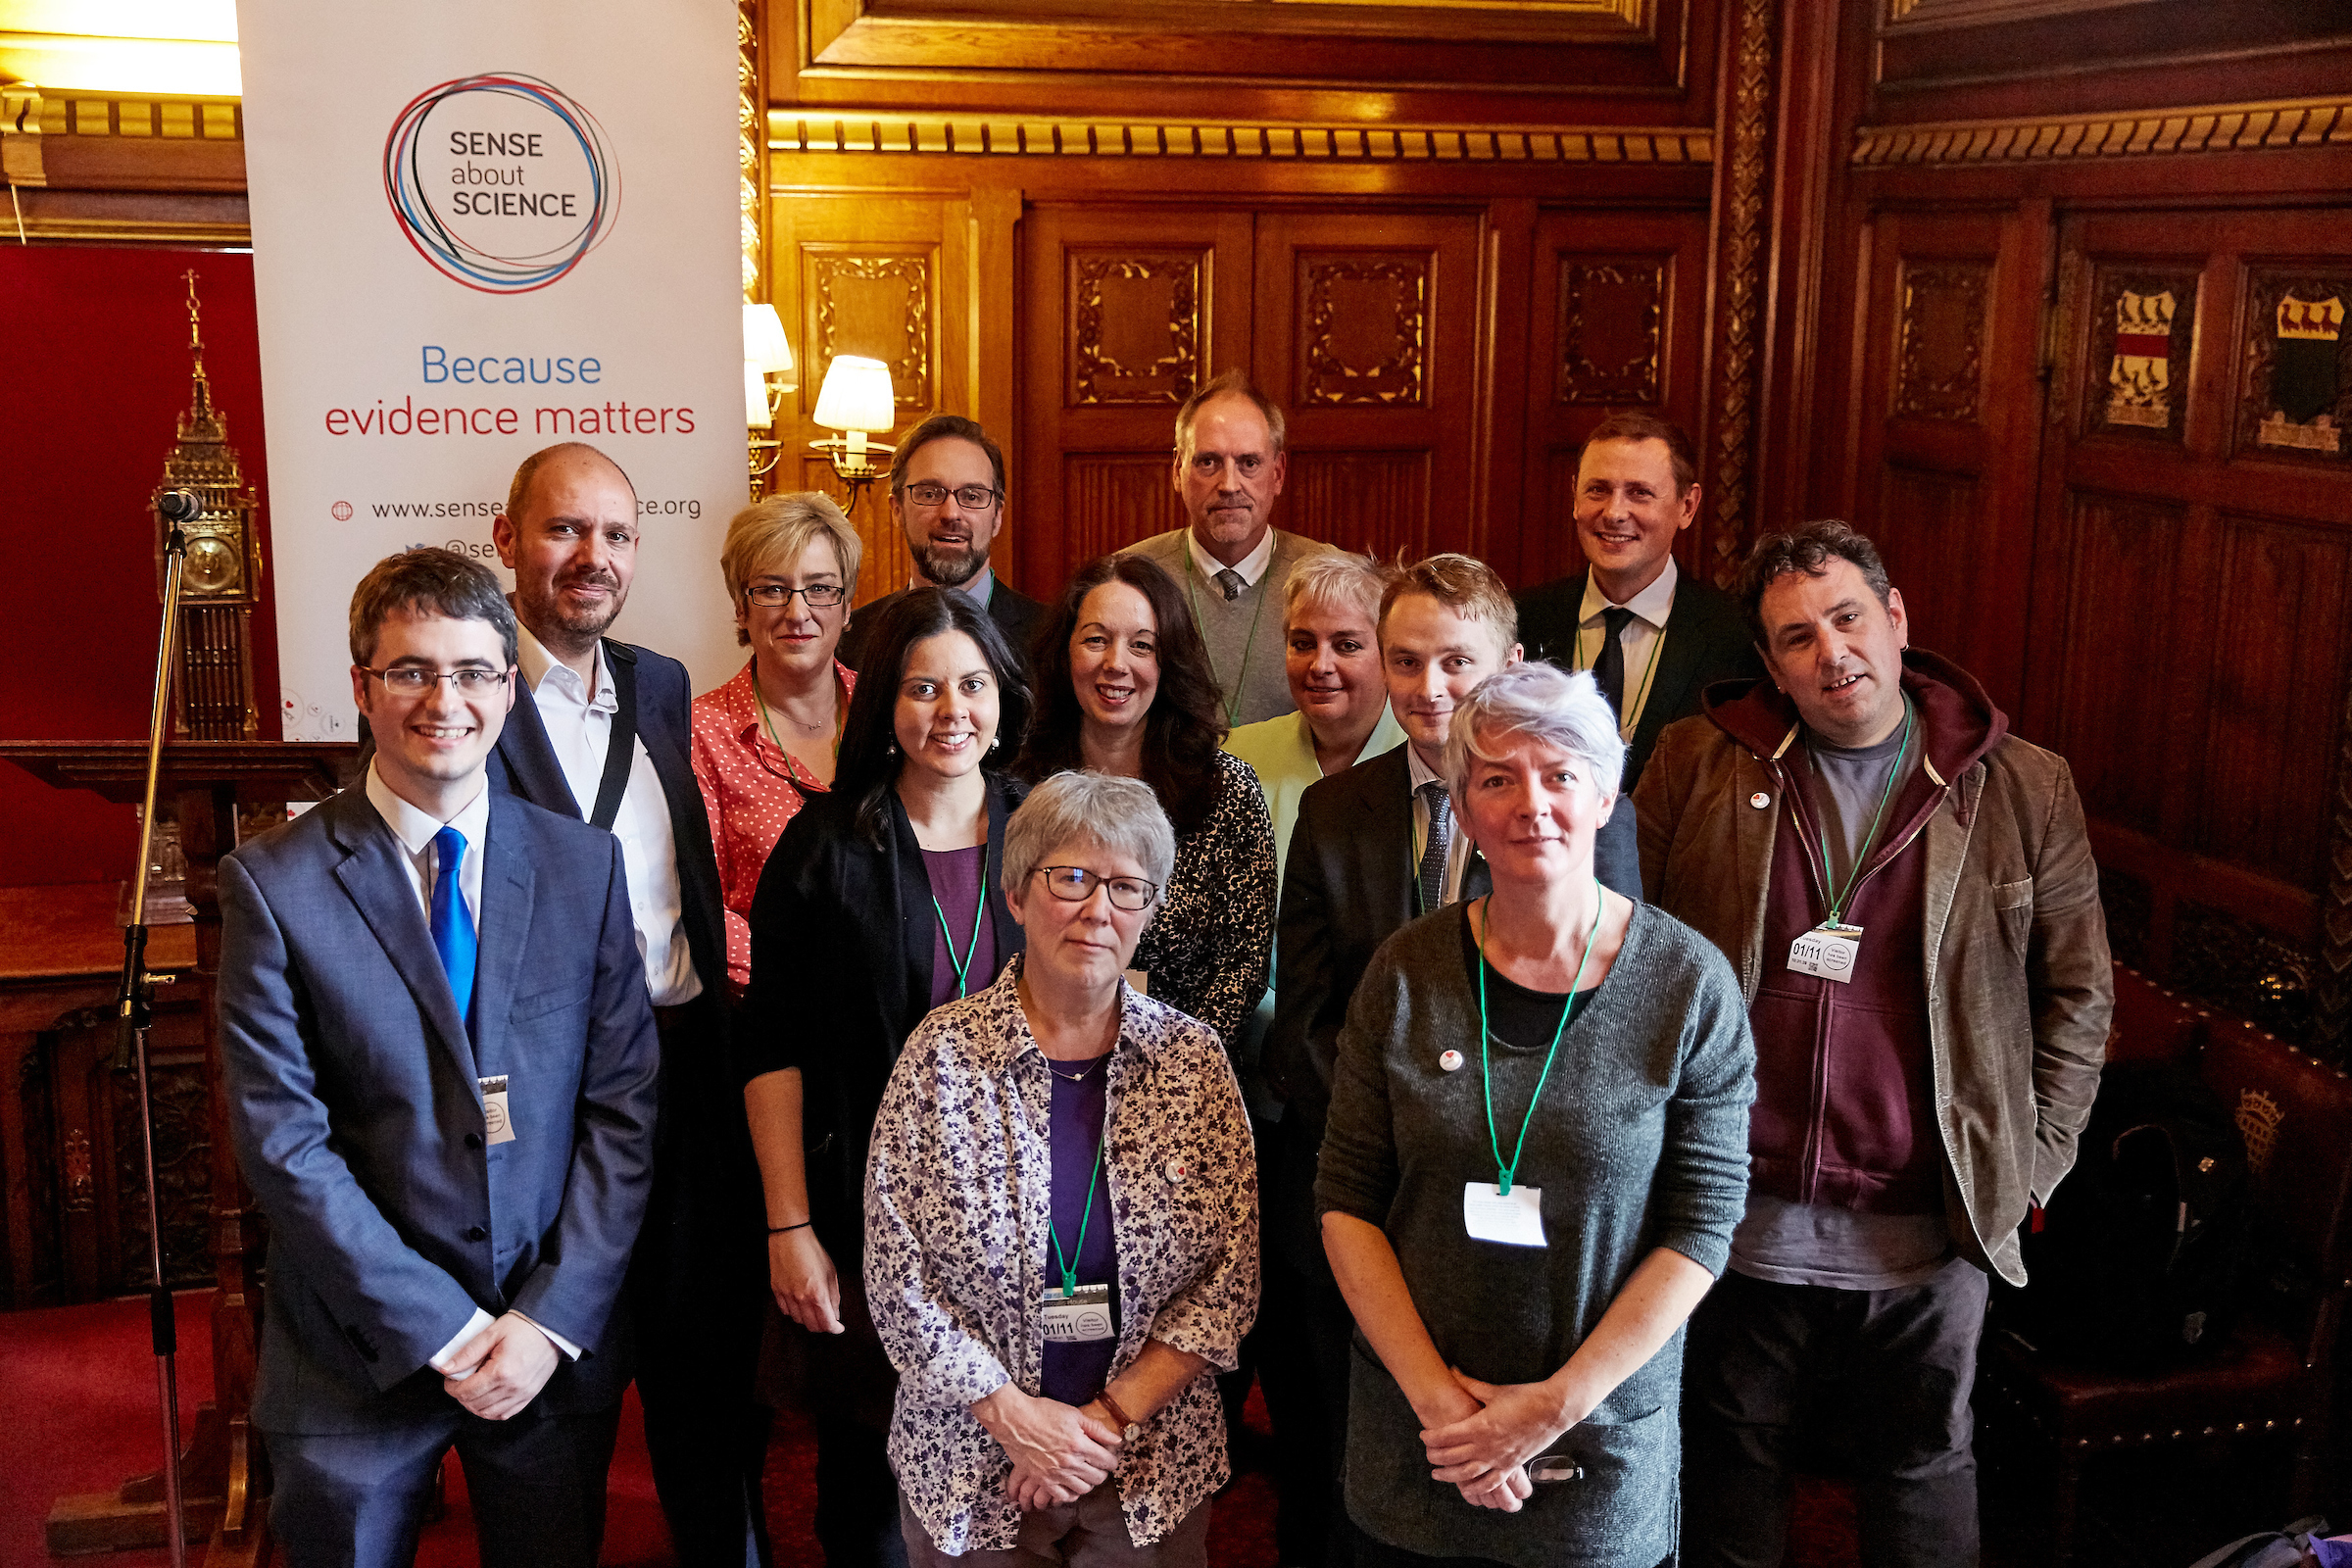 Speakers from the evidence matters event in parliament standing in front of the Sense about Science banner.